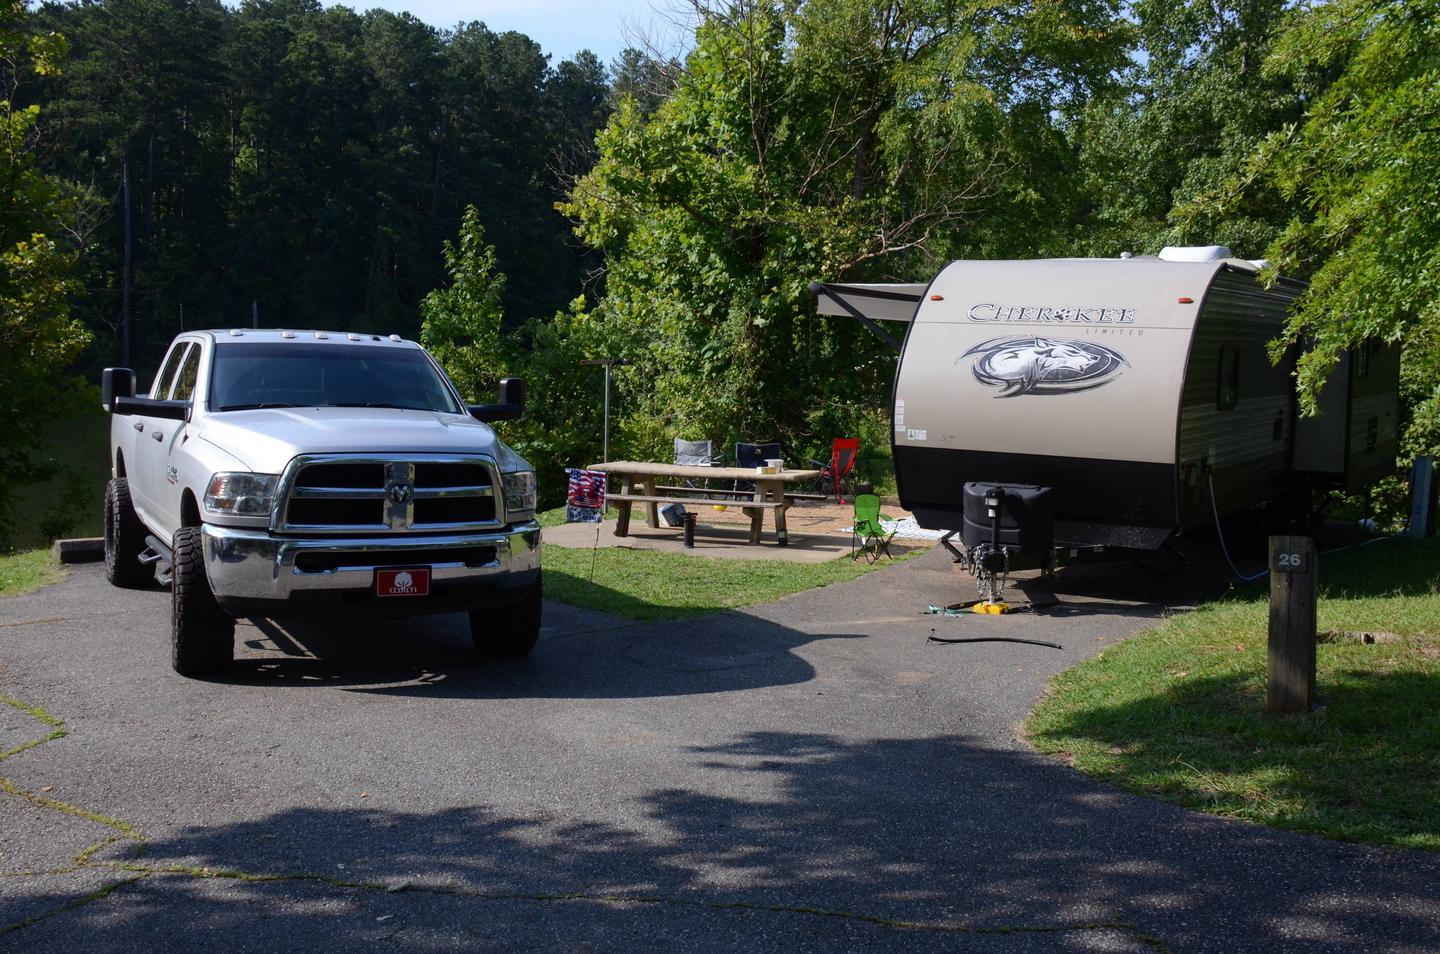 Parking, driveway slope, awning-side clearance.Payne Campground, campsite 26.